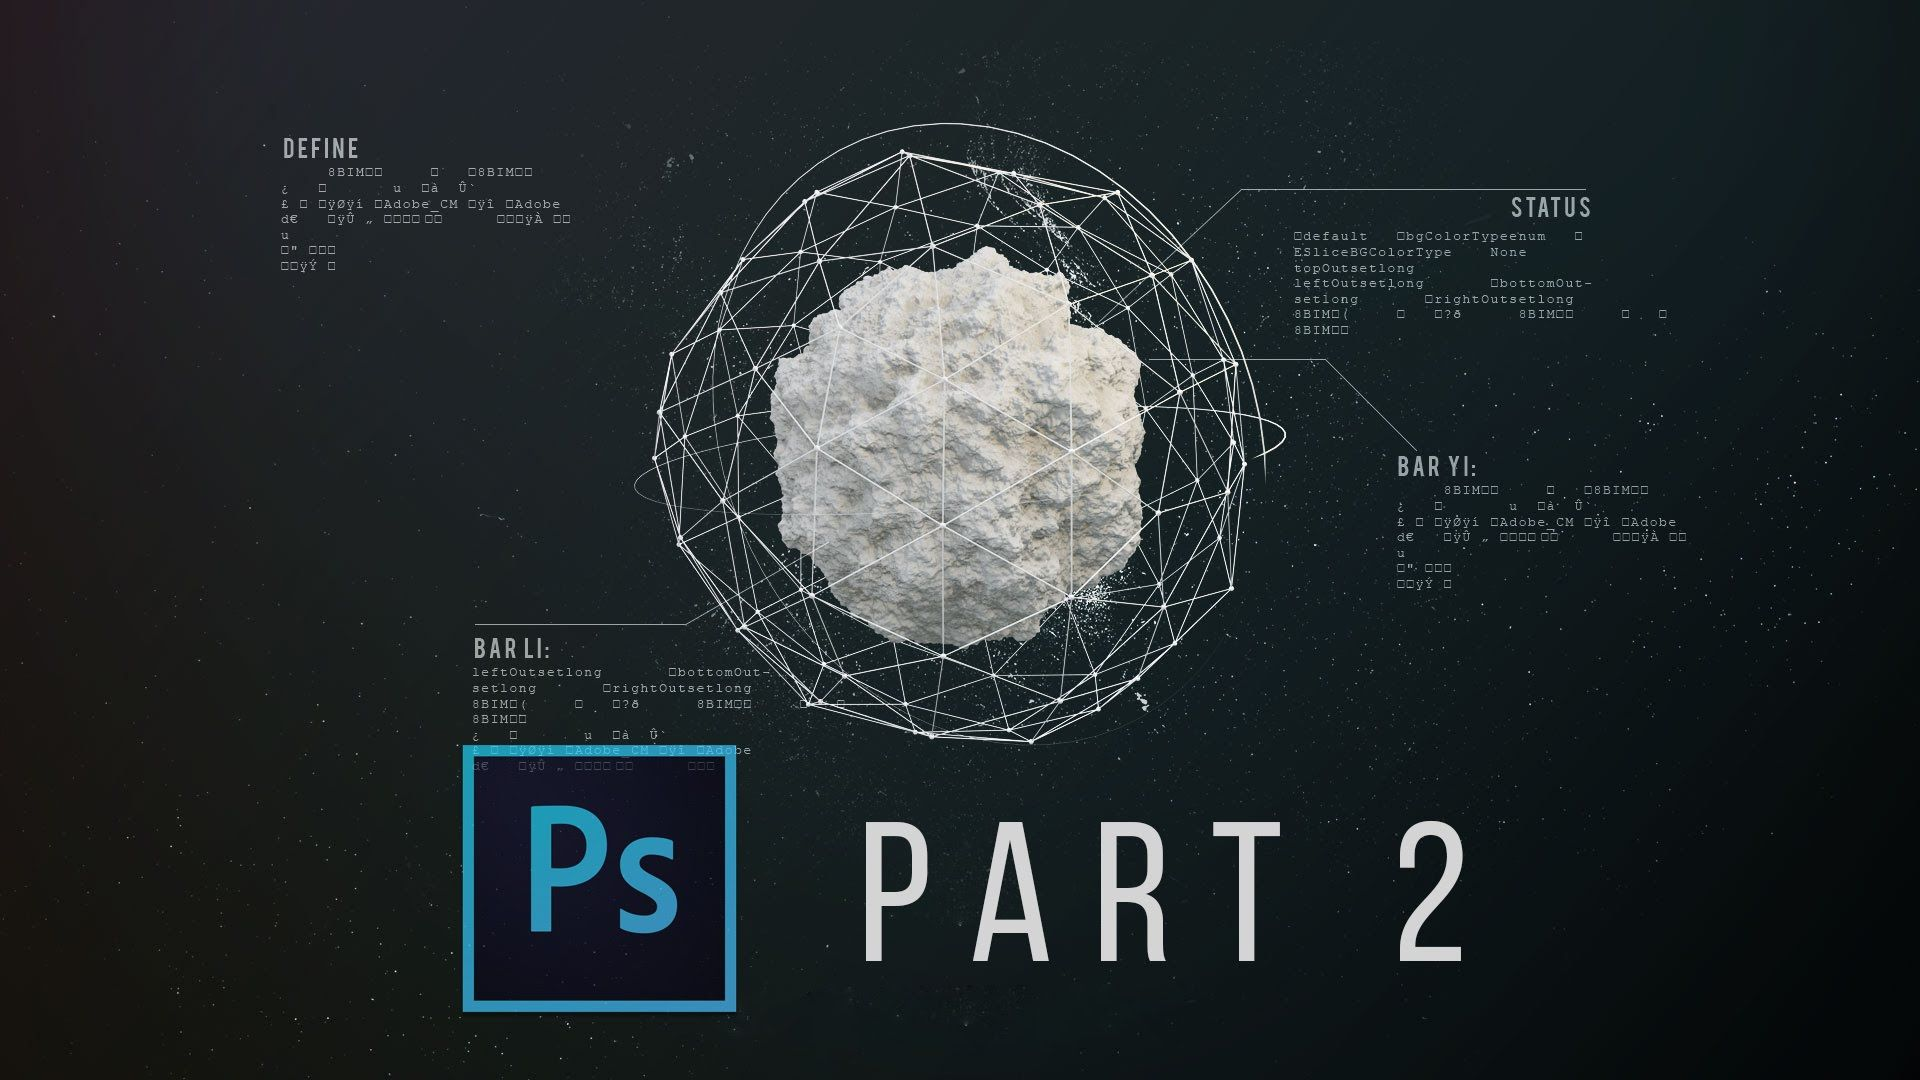 Abstract galactic sphere tutorial part 2 photoshop medium abstract galactic sphere tutorial part 2 photoshop baditri Images